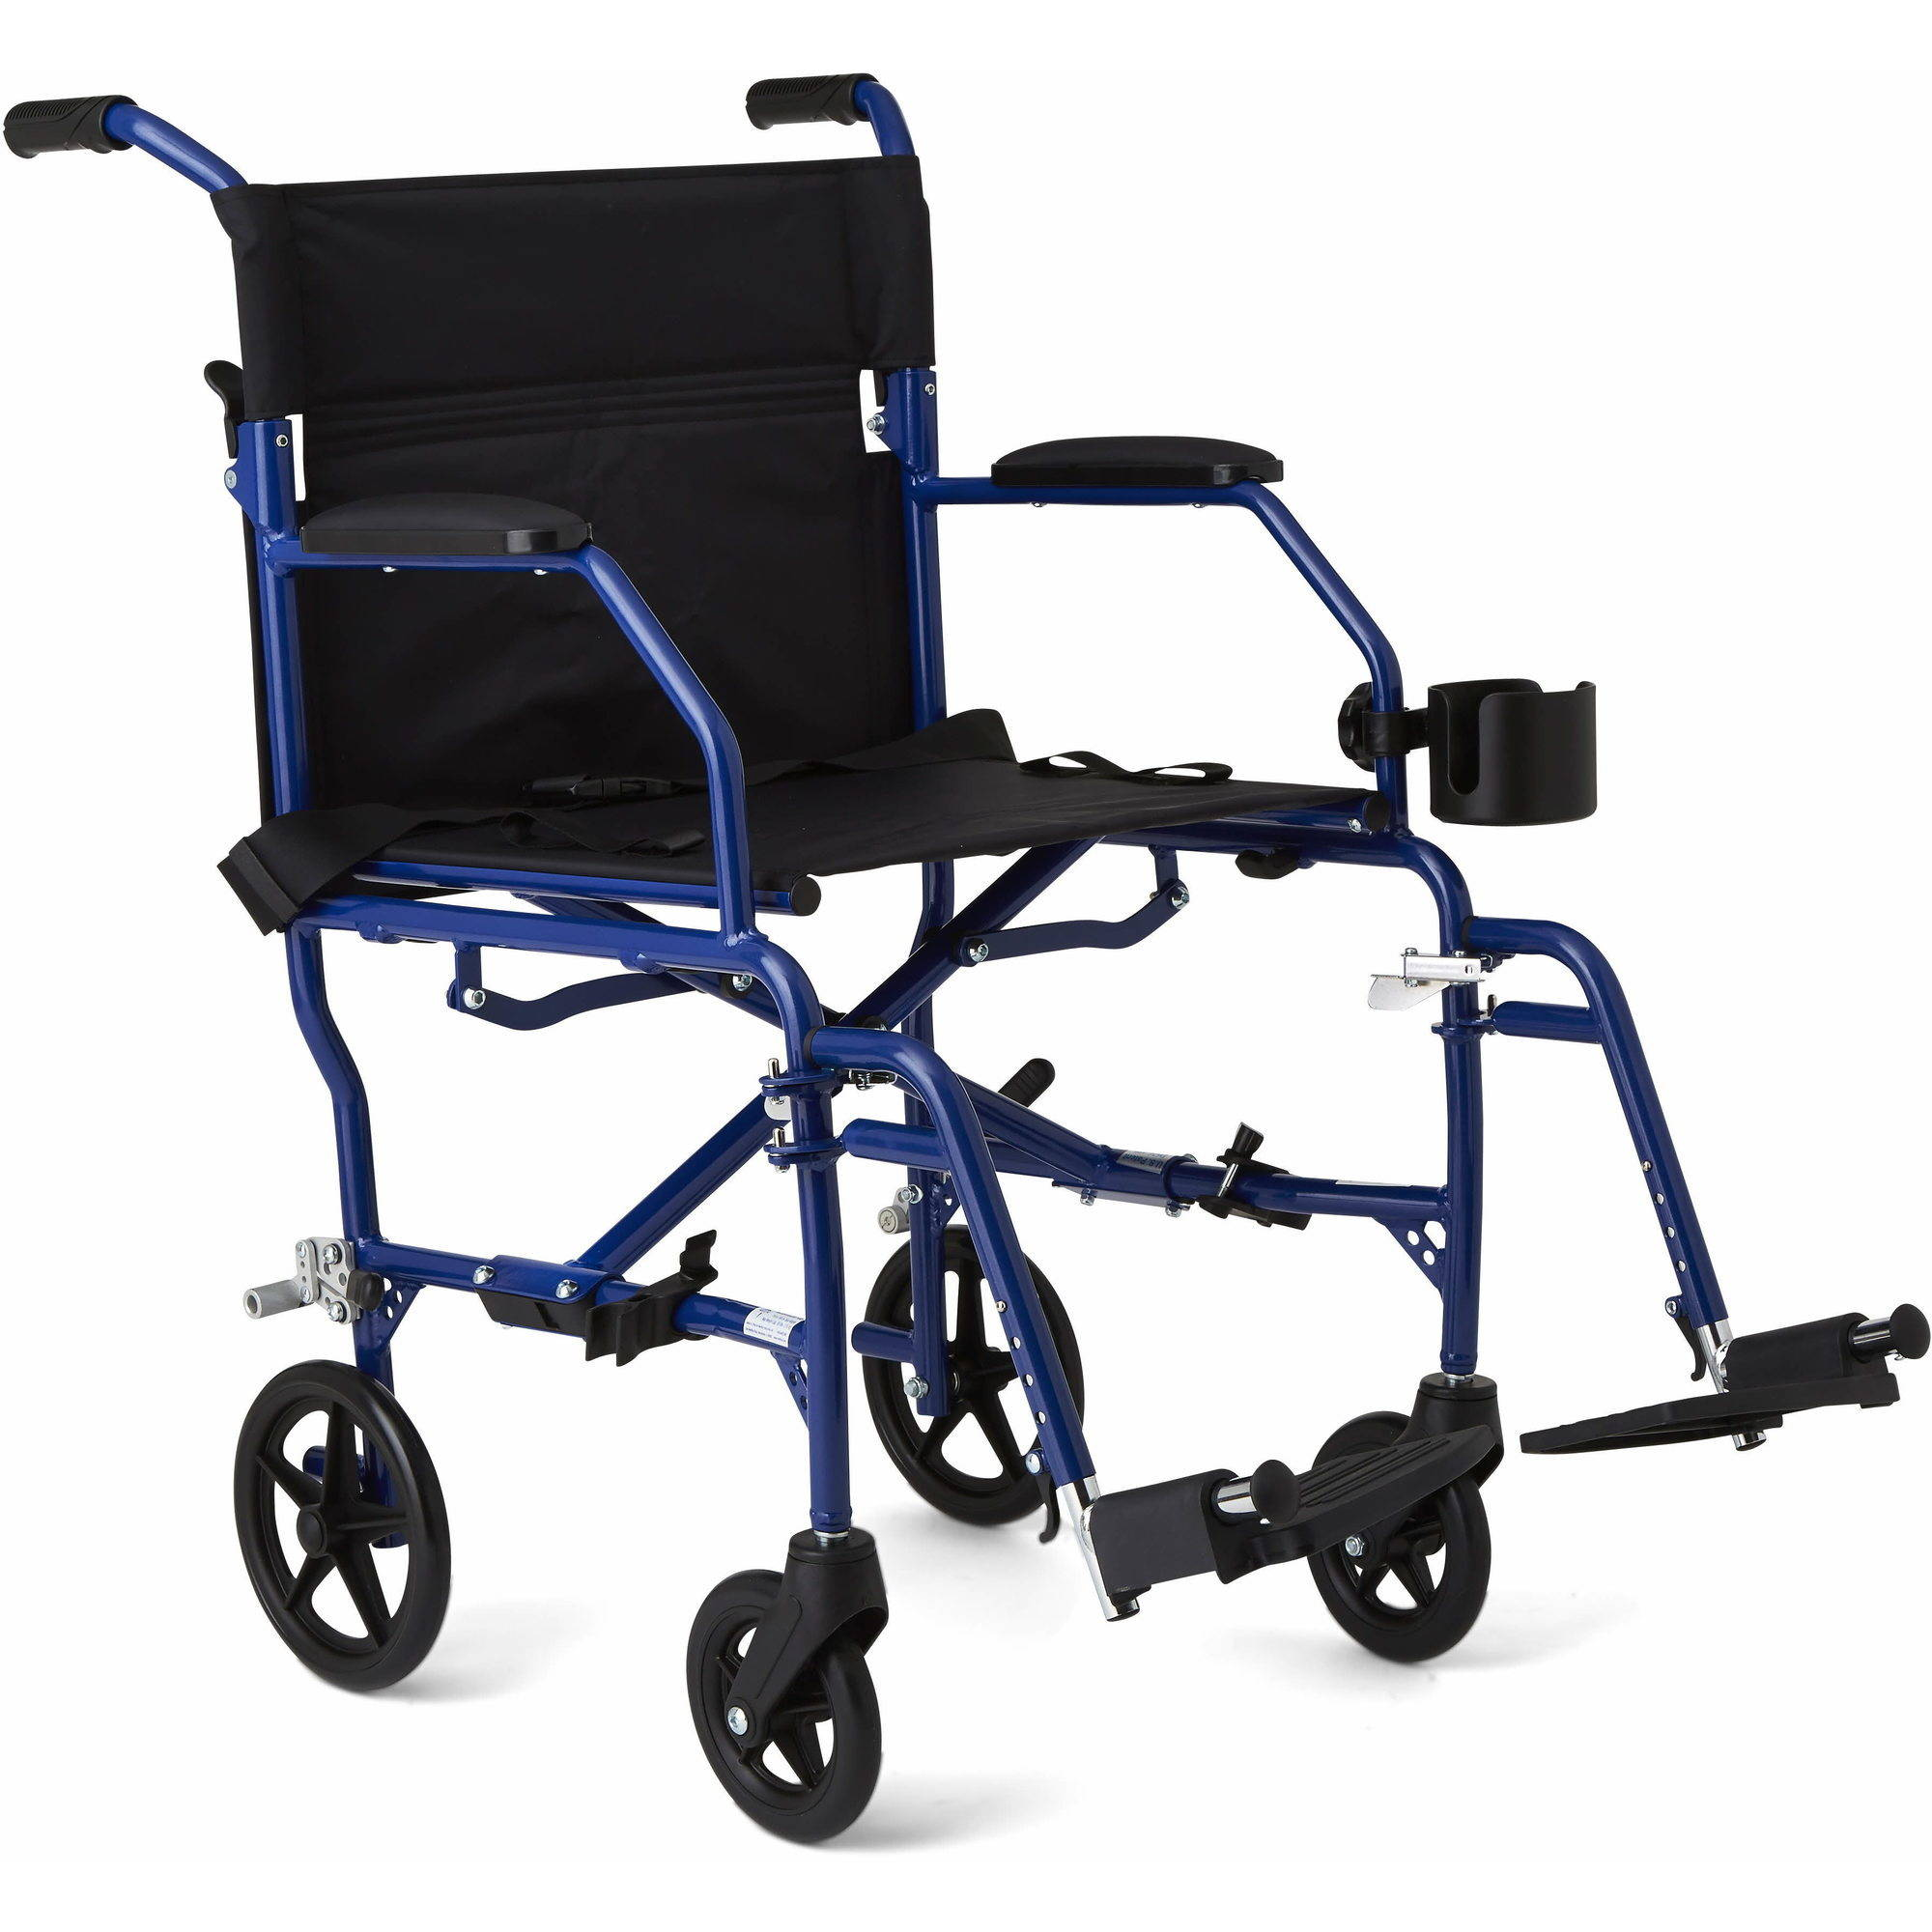 "Medline Ultralight Transport Wheelchair with 19"" x 16"" Seat, Blue"